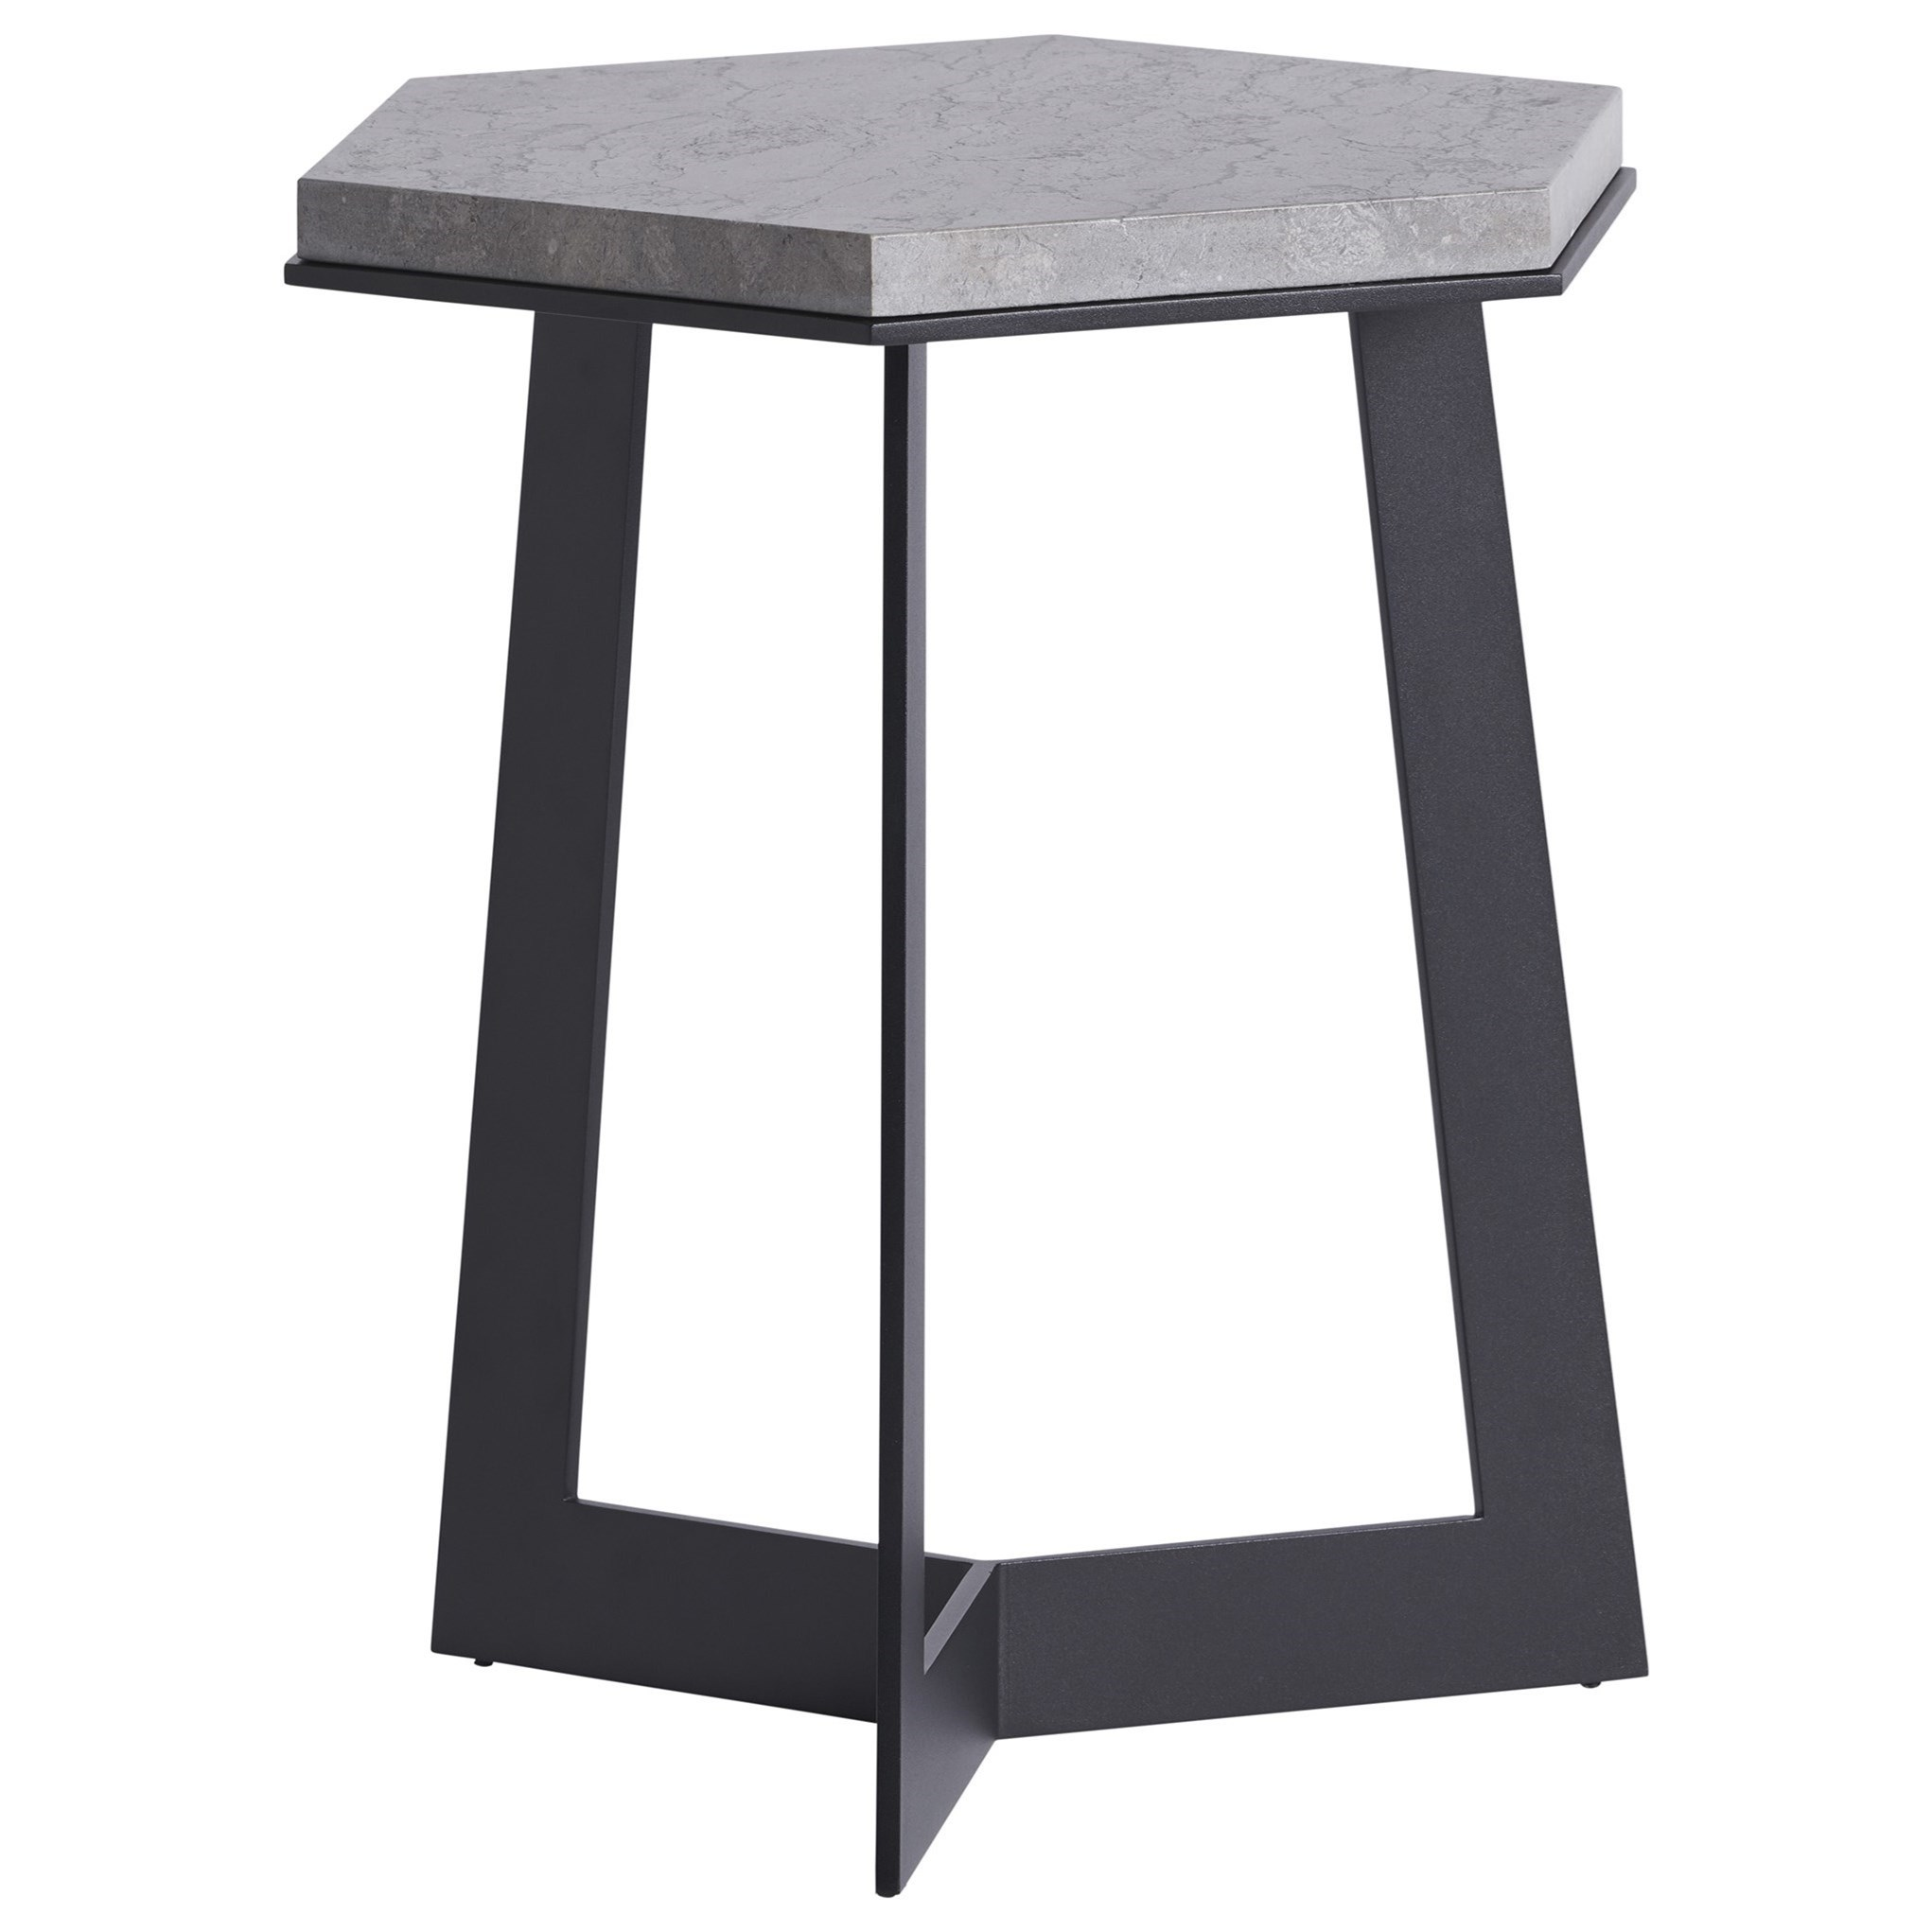 South Beach Spot Table by Tommy Bahama Outdoor Living at Baer's Furniture